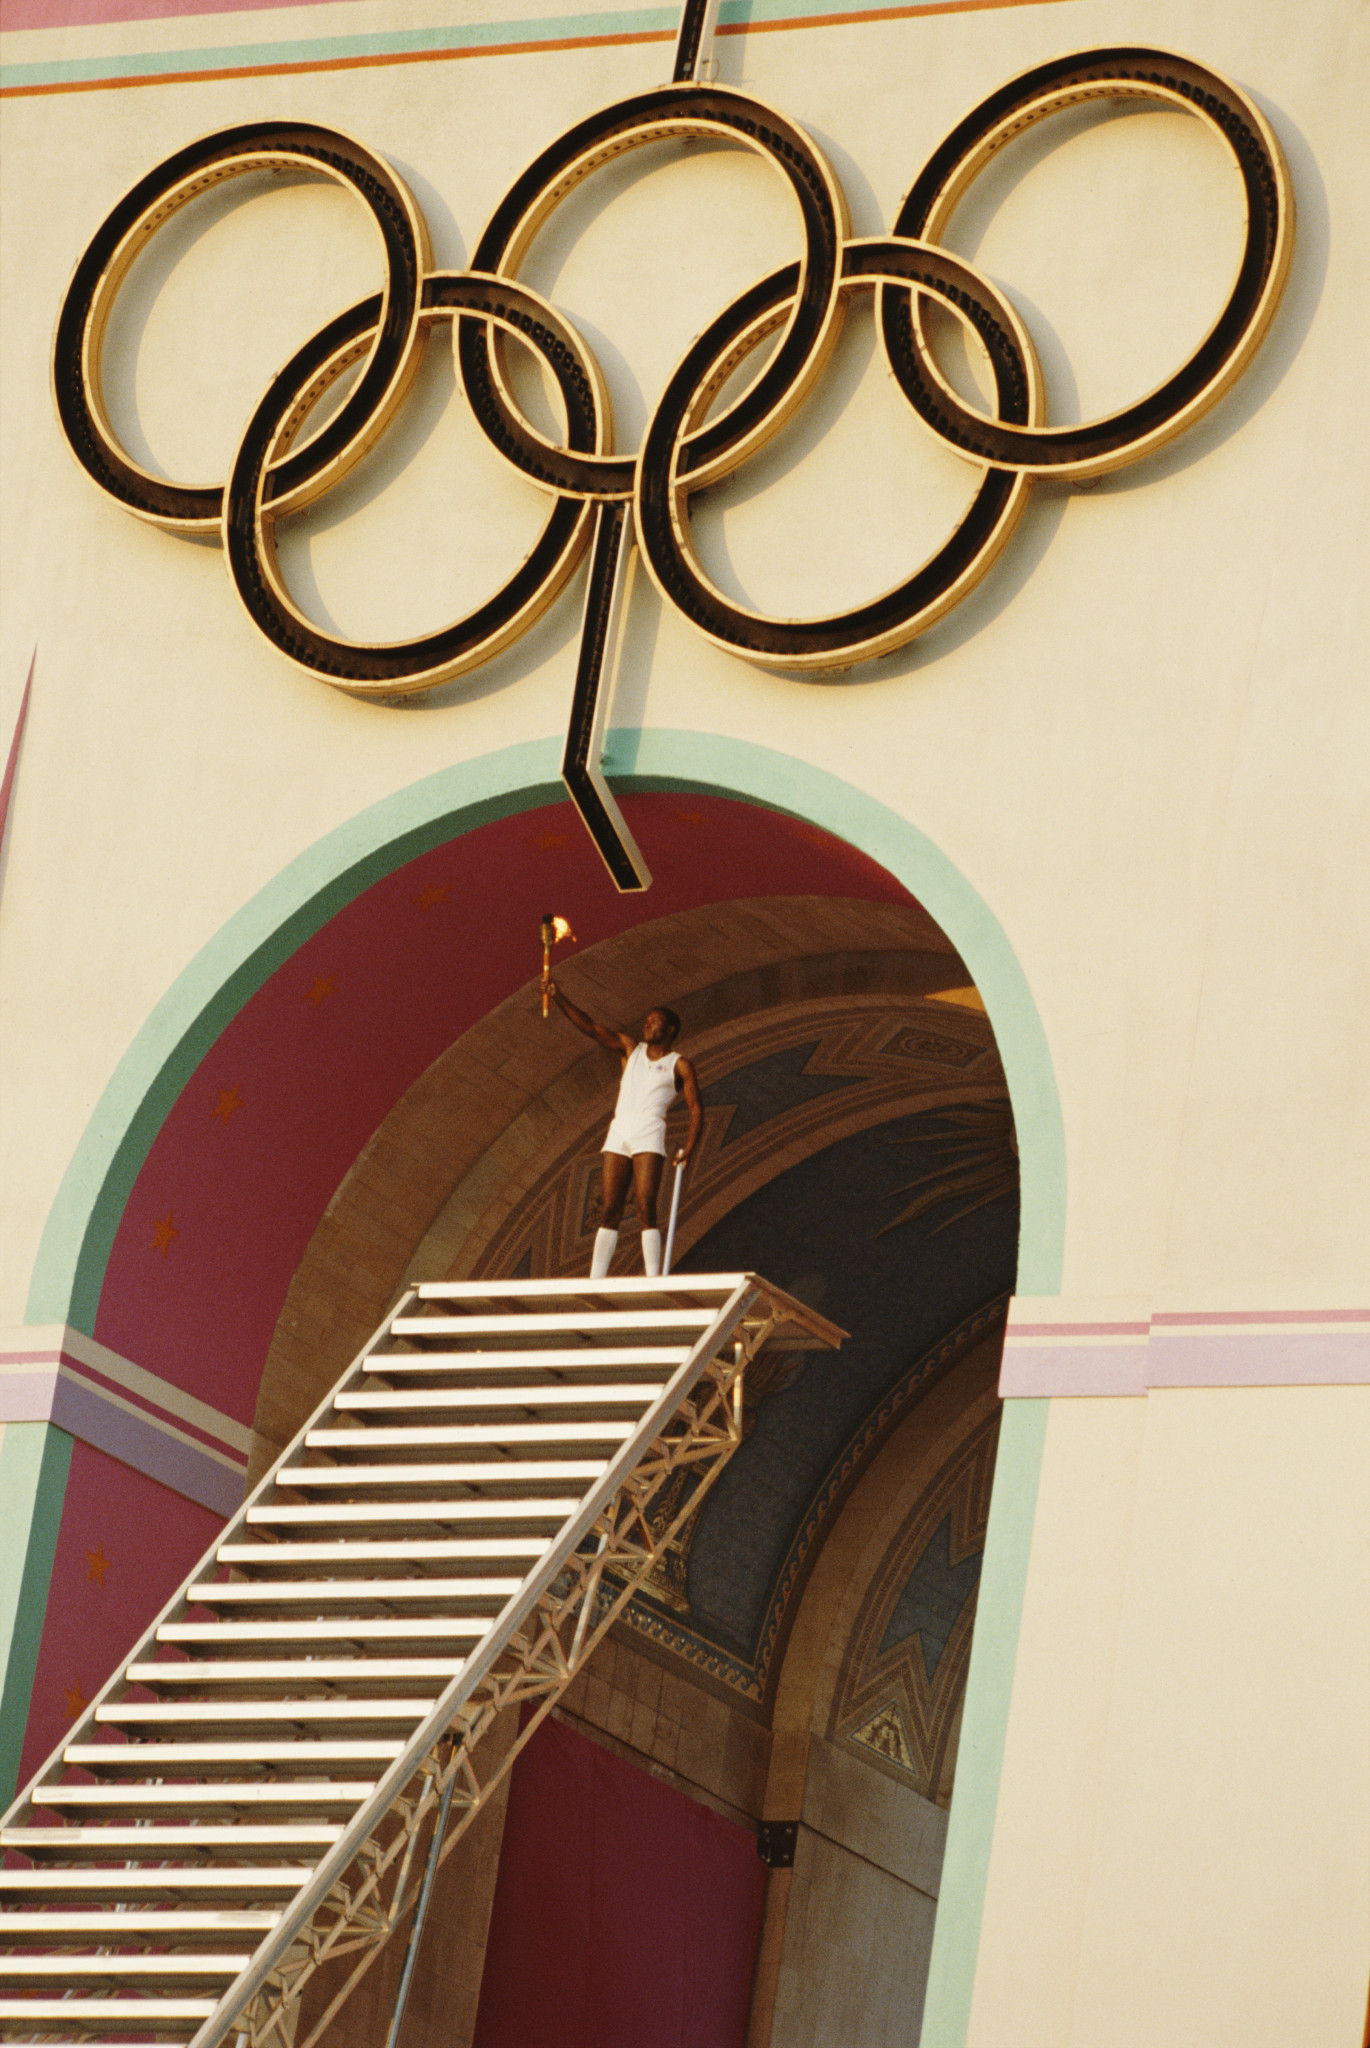 The Olympic Movement and commercialism have co-existed with increasing complexity since Los Angeles 1984 ©Getty Images